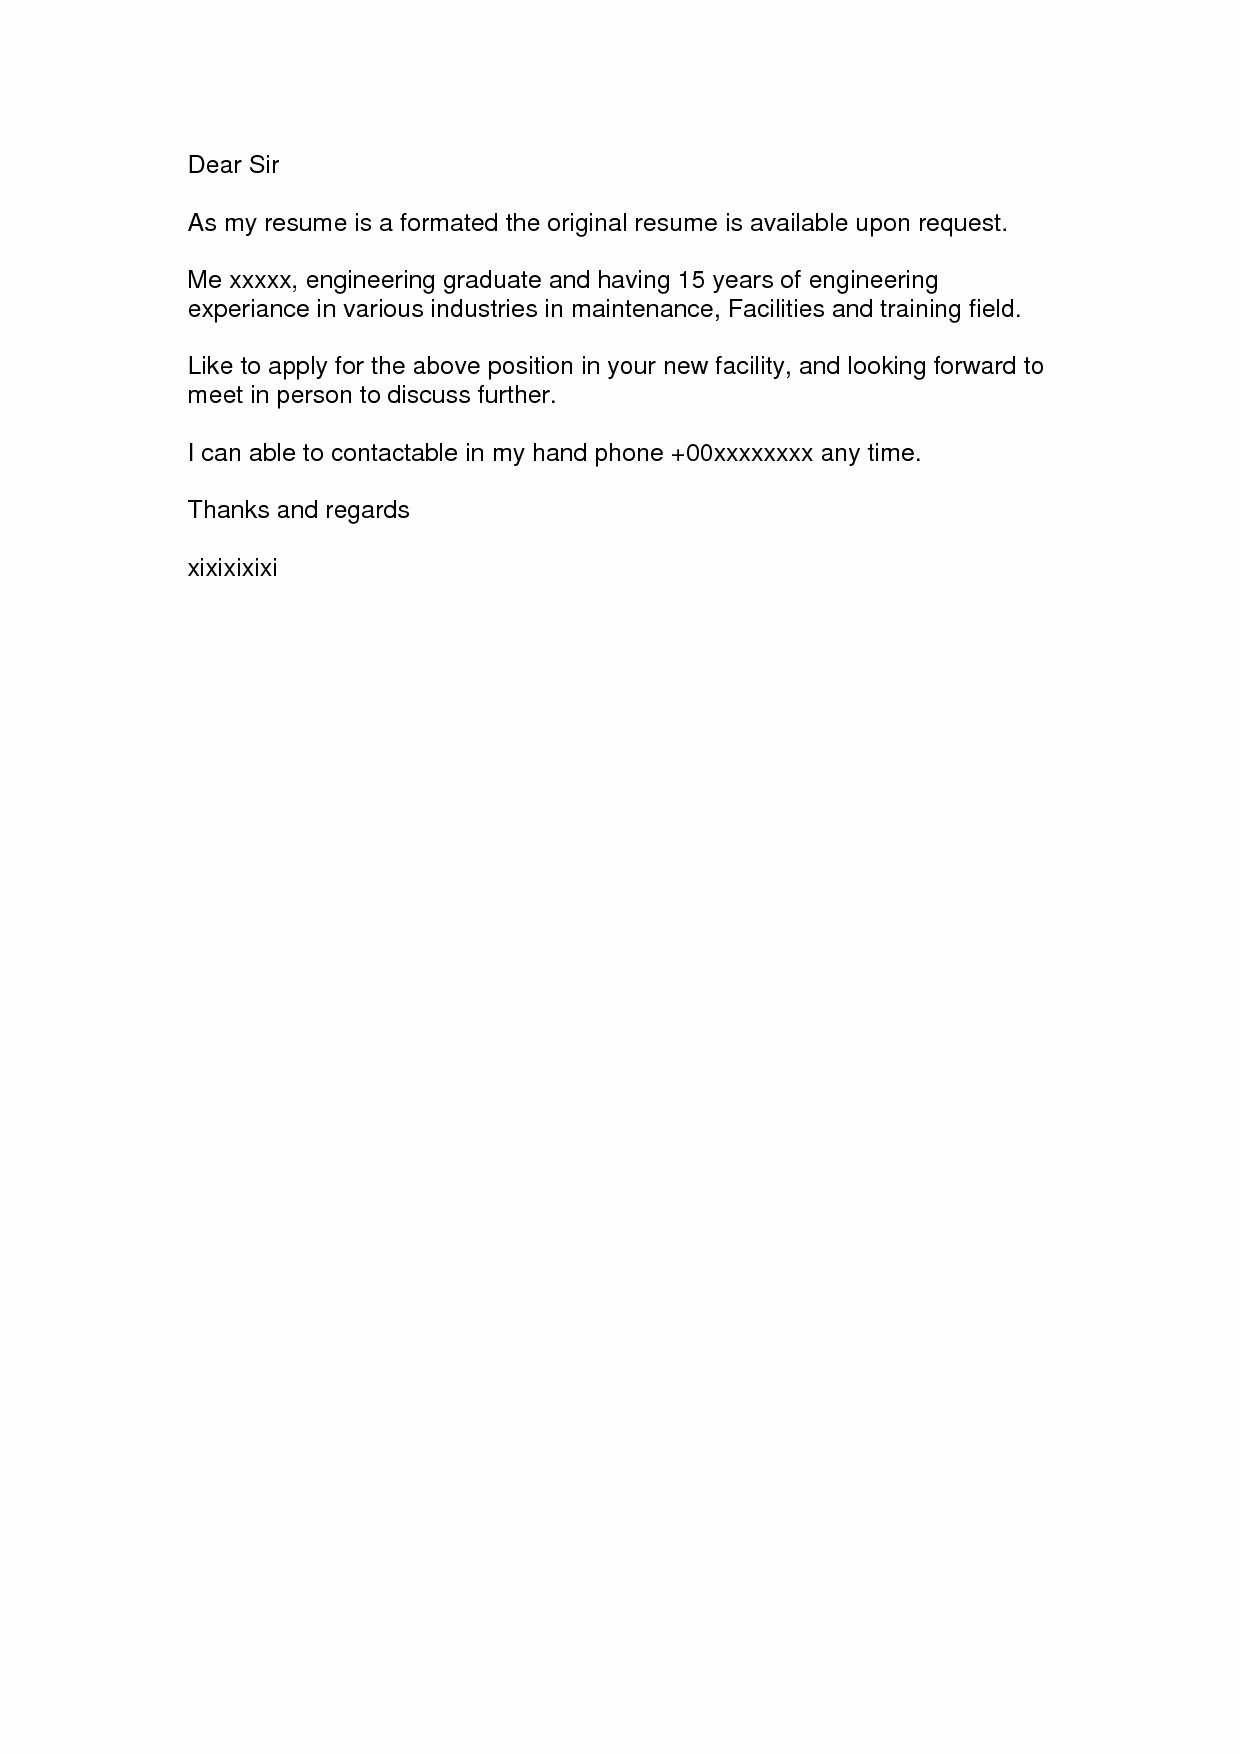 Short and Simple Cover Letters Inspirational Simple Cover Letter Easy Template Pix Widescreensimple